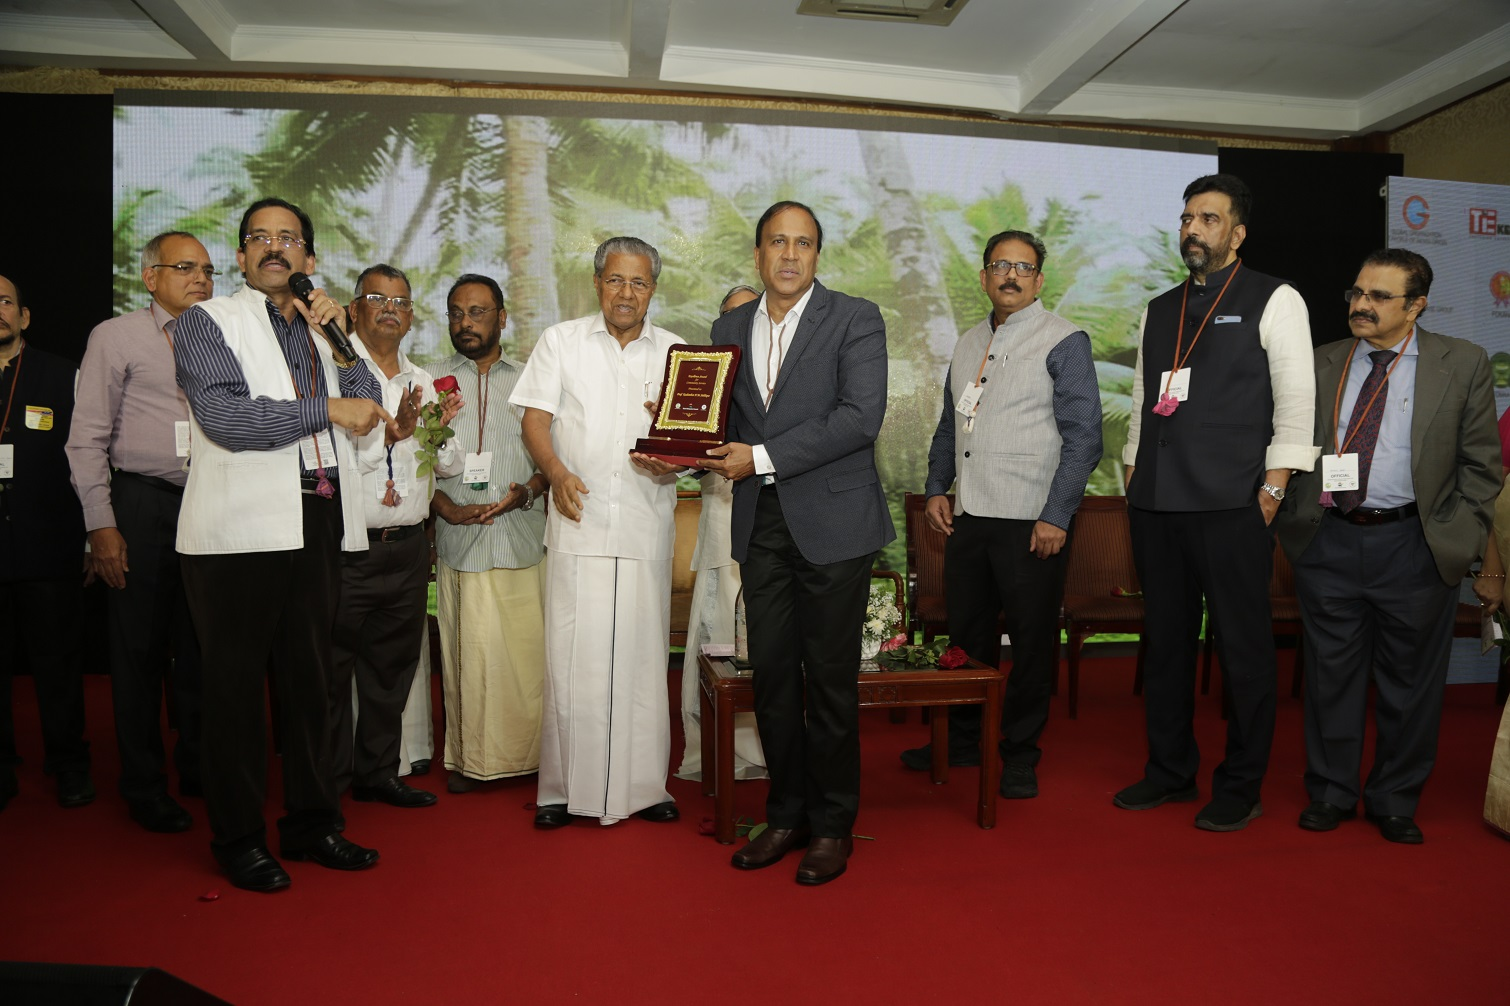 Kadambot Siddique in Kerala receives his prize from the Chief Minister